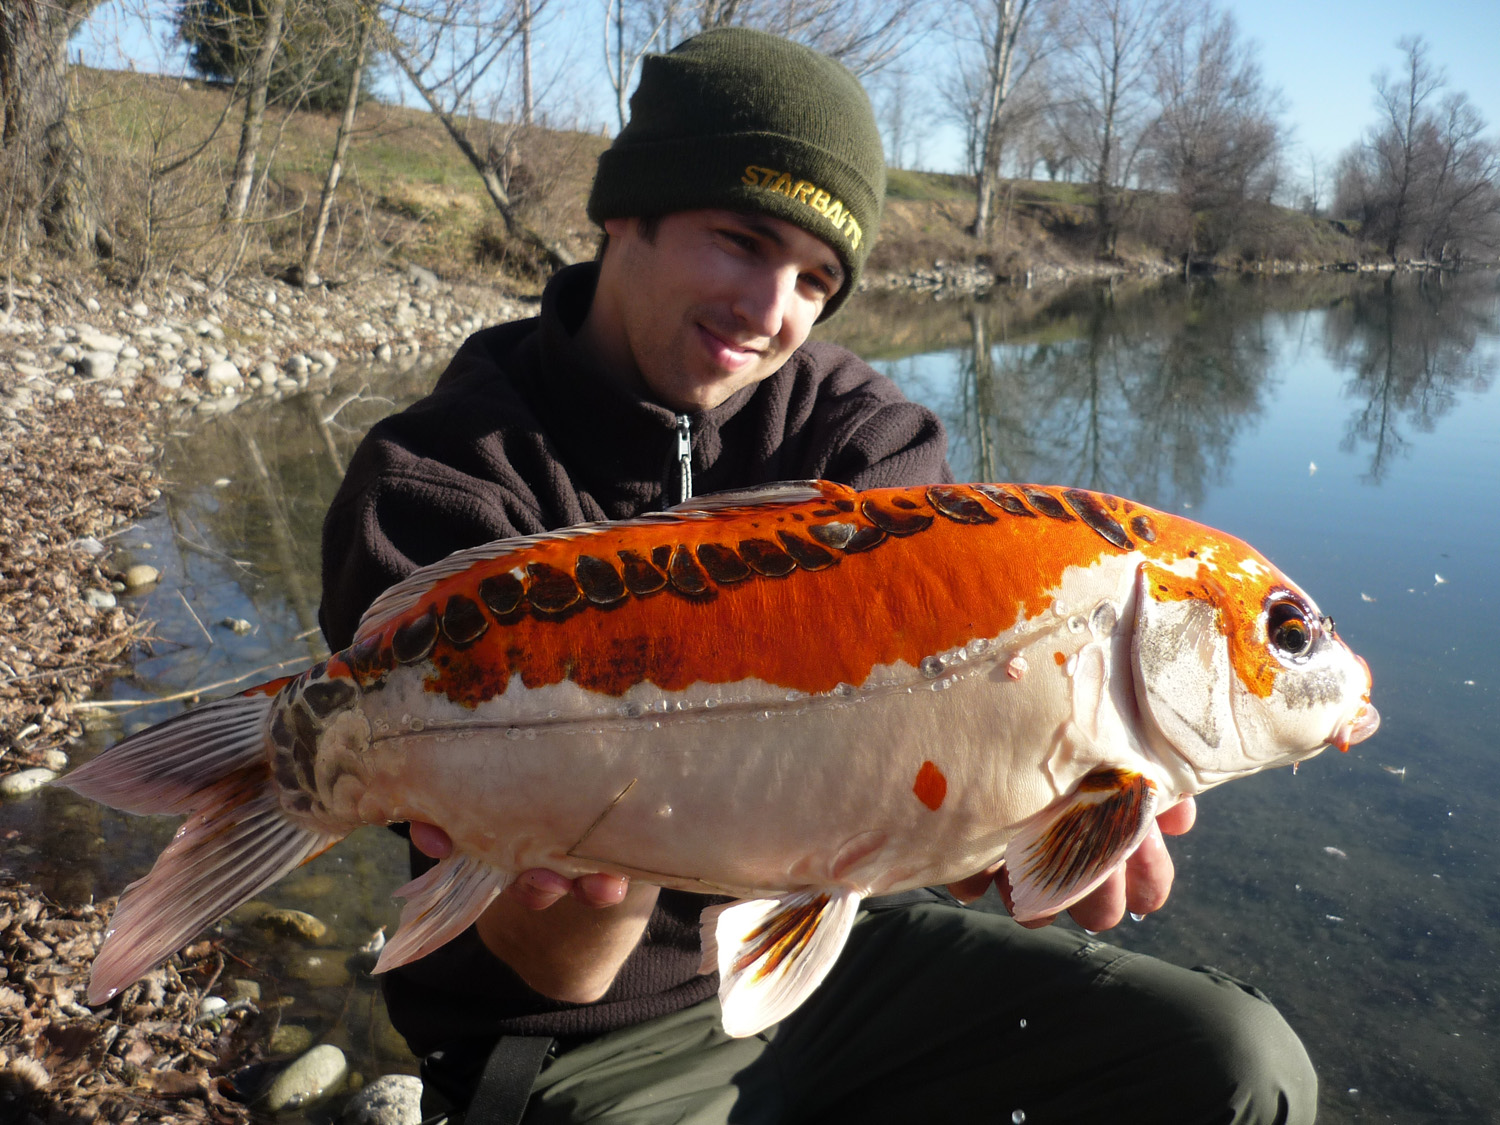 http://starbaits.com/fichiers/images/team/gallery/DUCERE_Cedric/16-DUCERE-CEDRIC.JPG